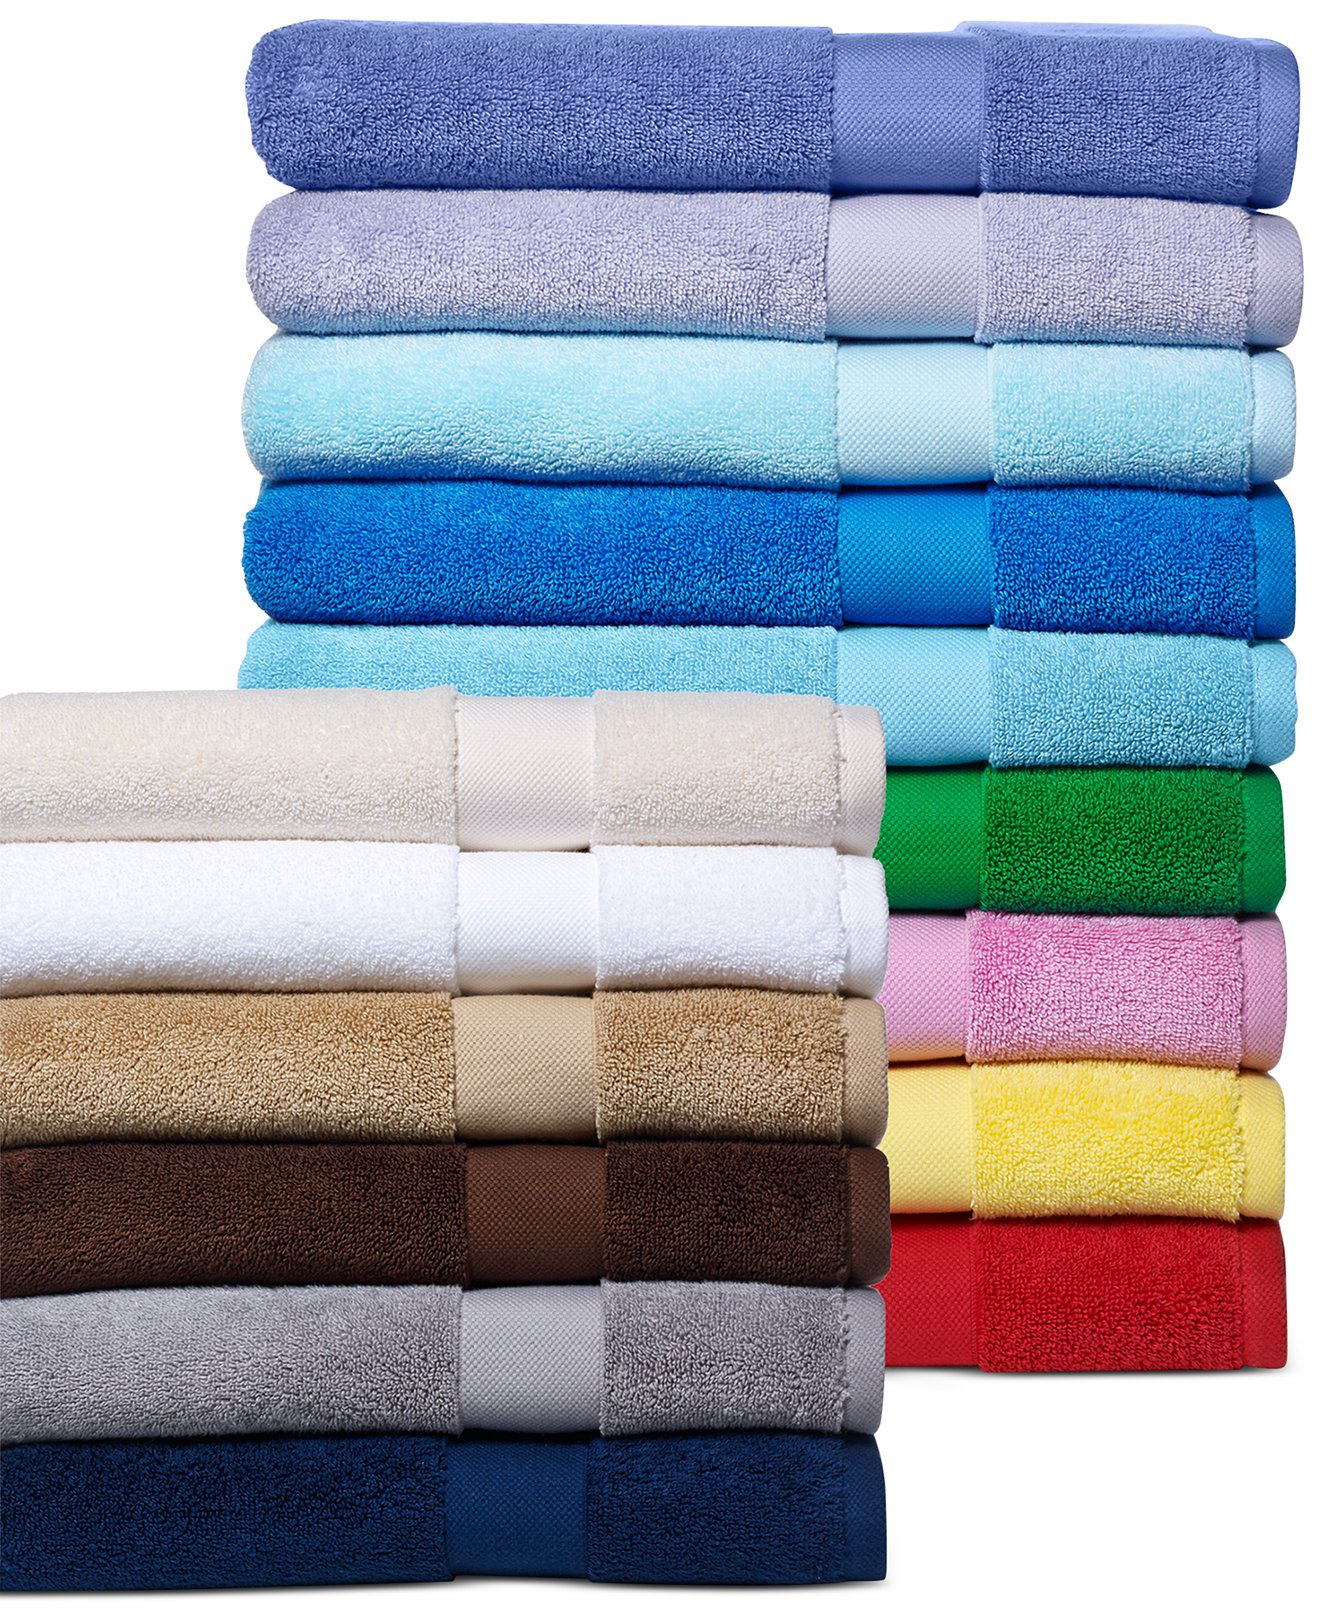 Ralph Lauren Bath Sheet Prepossessing Wescott Bath Towel Collection 100% Cotton  Towels Soft Towels And Inspiration Design